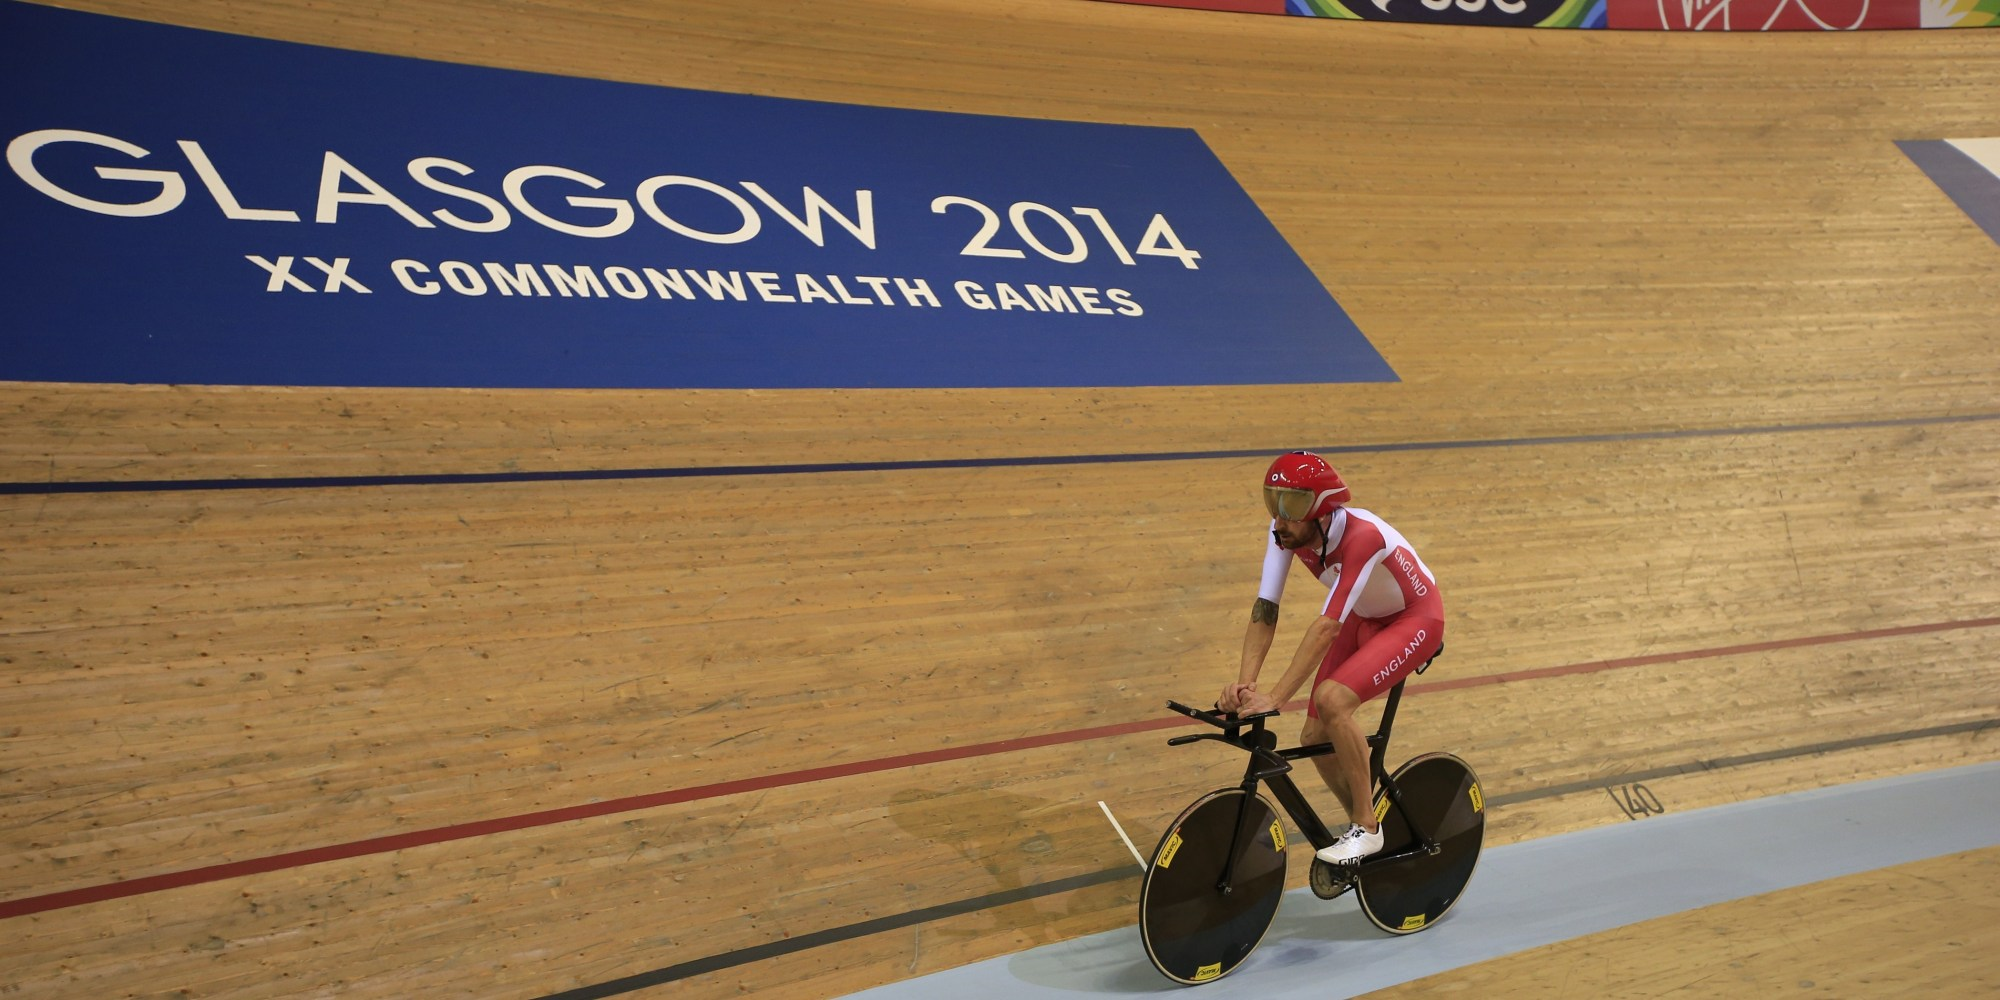 Let's Hope the Glasgow Commonwealth Games Give London 2012 ...